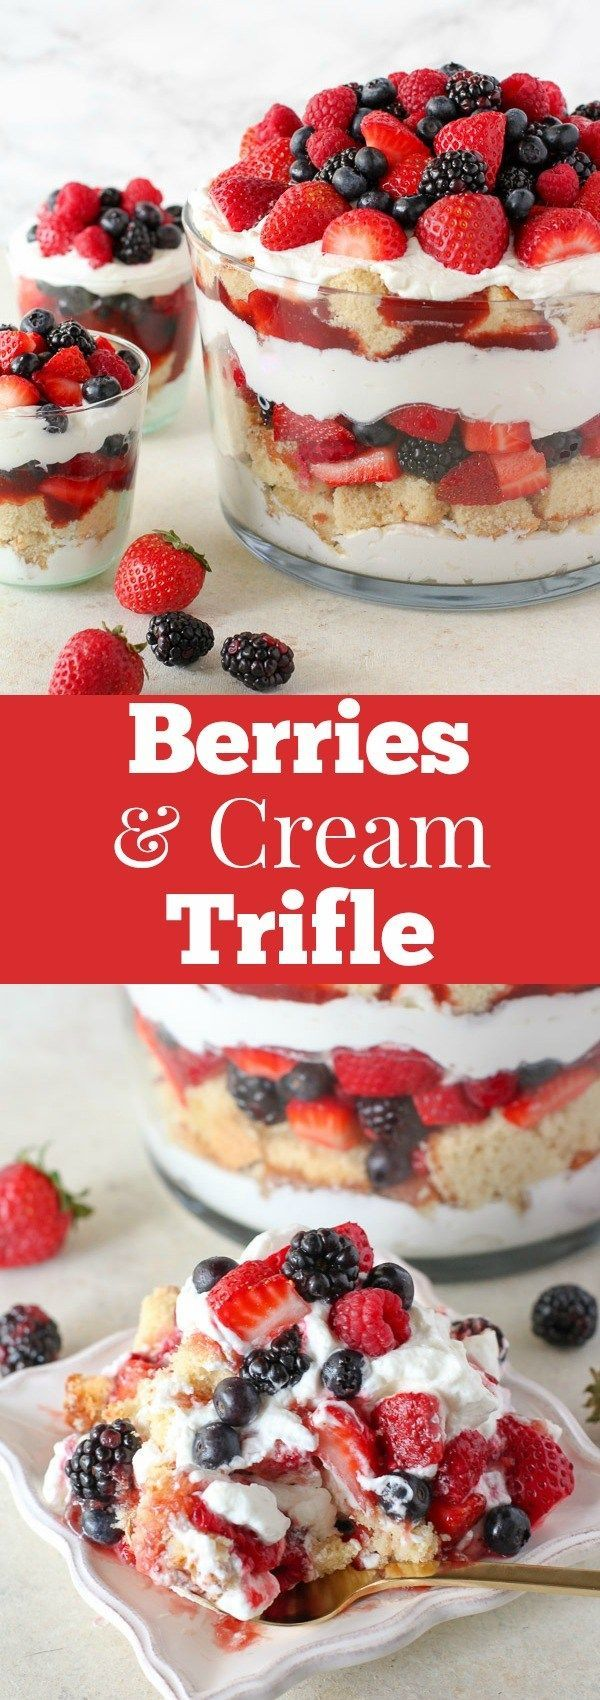 Berries and Cream Trifle - This easy trifle includes layers of cake, fresh berries, and whipped cream. Take a shortcut with your favorite store bought pound cake or angel food cake - or make your own. You'll love this simple and beautiful red, white, and blue dessert!